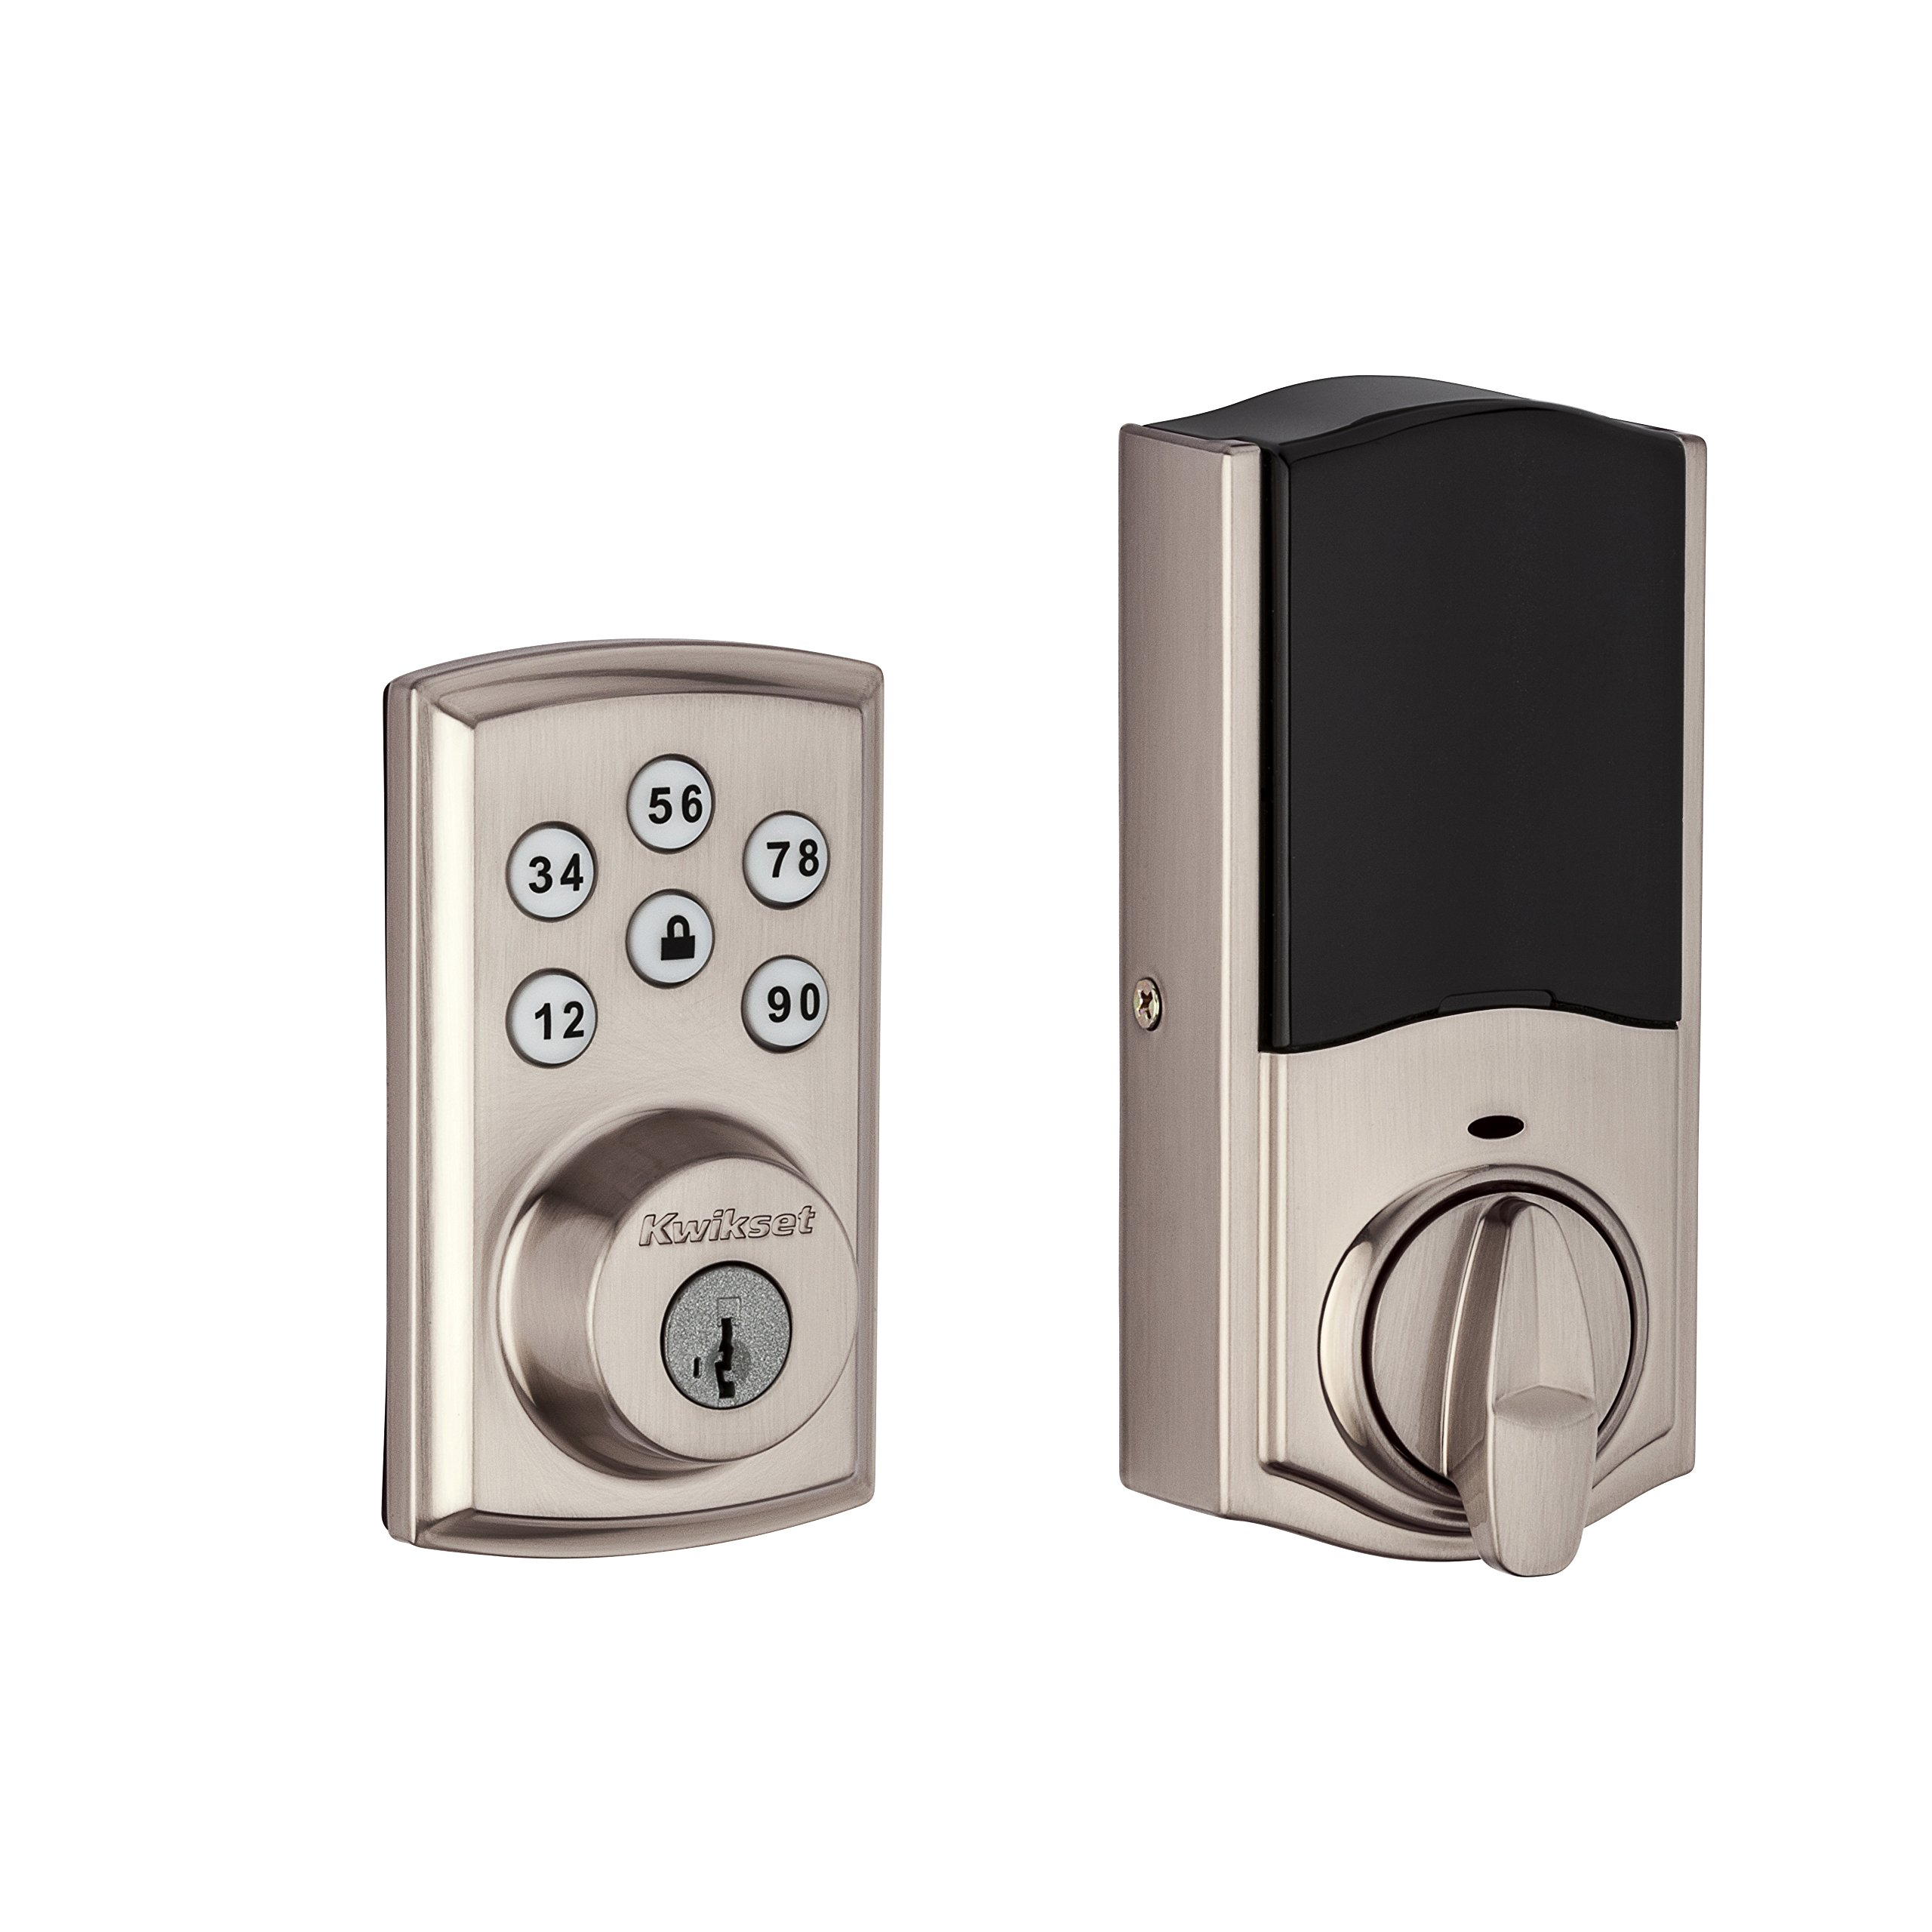 Kwikset 888ZW500-15S Smartcode 888 Electronic Deadbolt with Z-Wave Technology by Kwikset (Image #3)